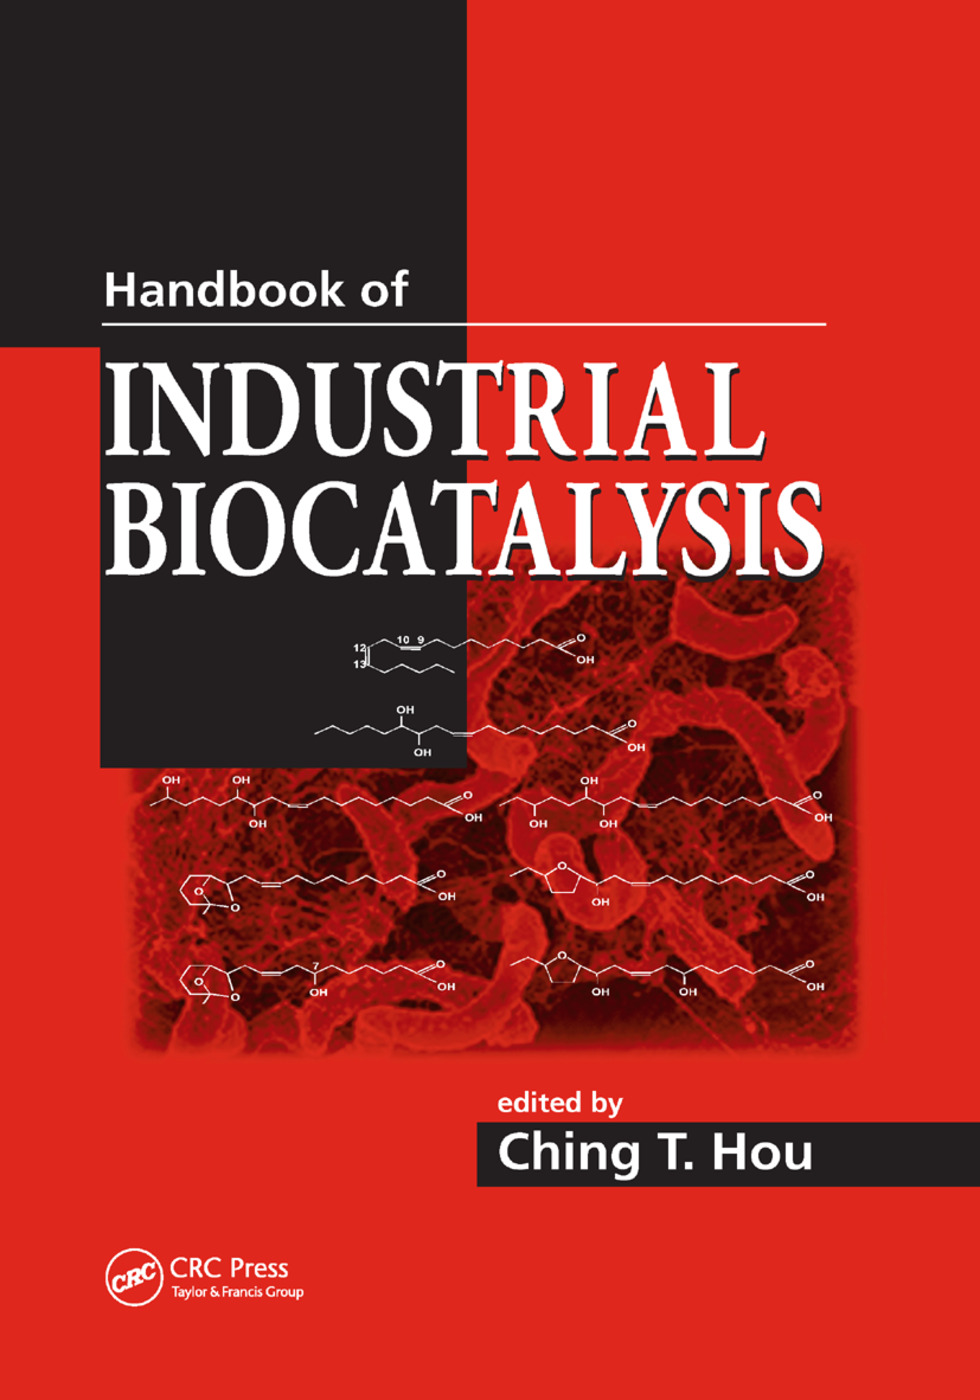 Handbook of Industrial Biocatalysis: 1st Edition (Paperback) book cover